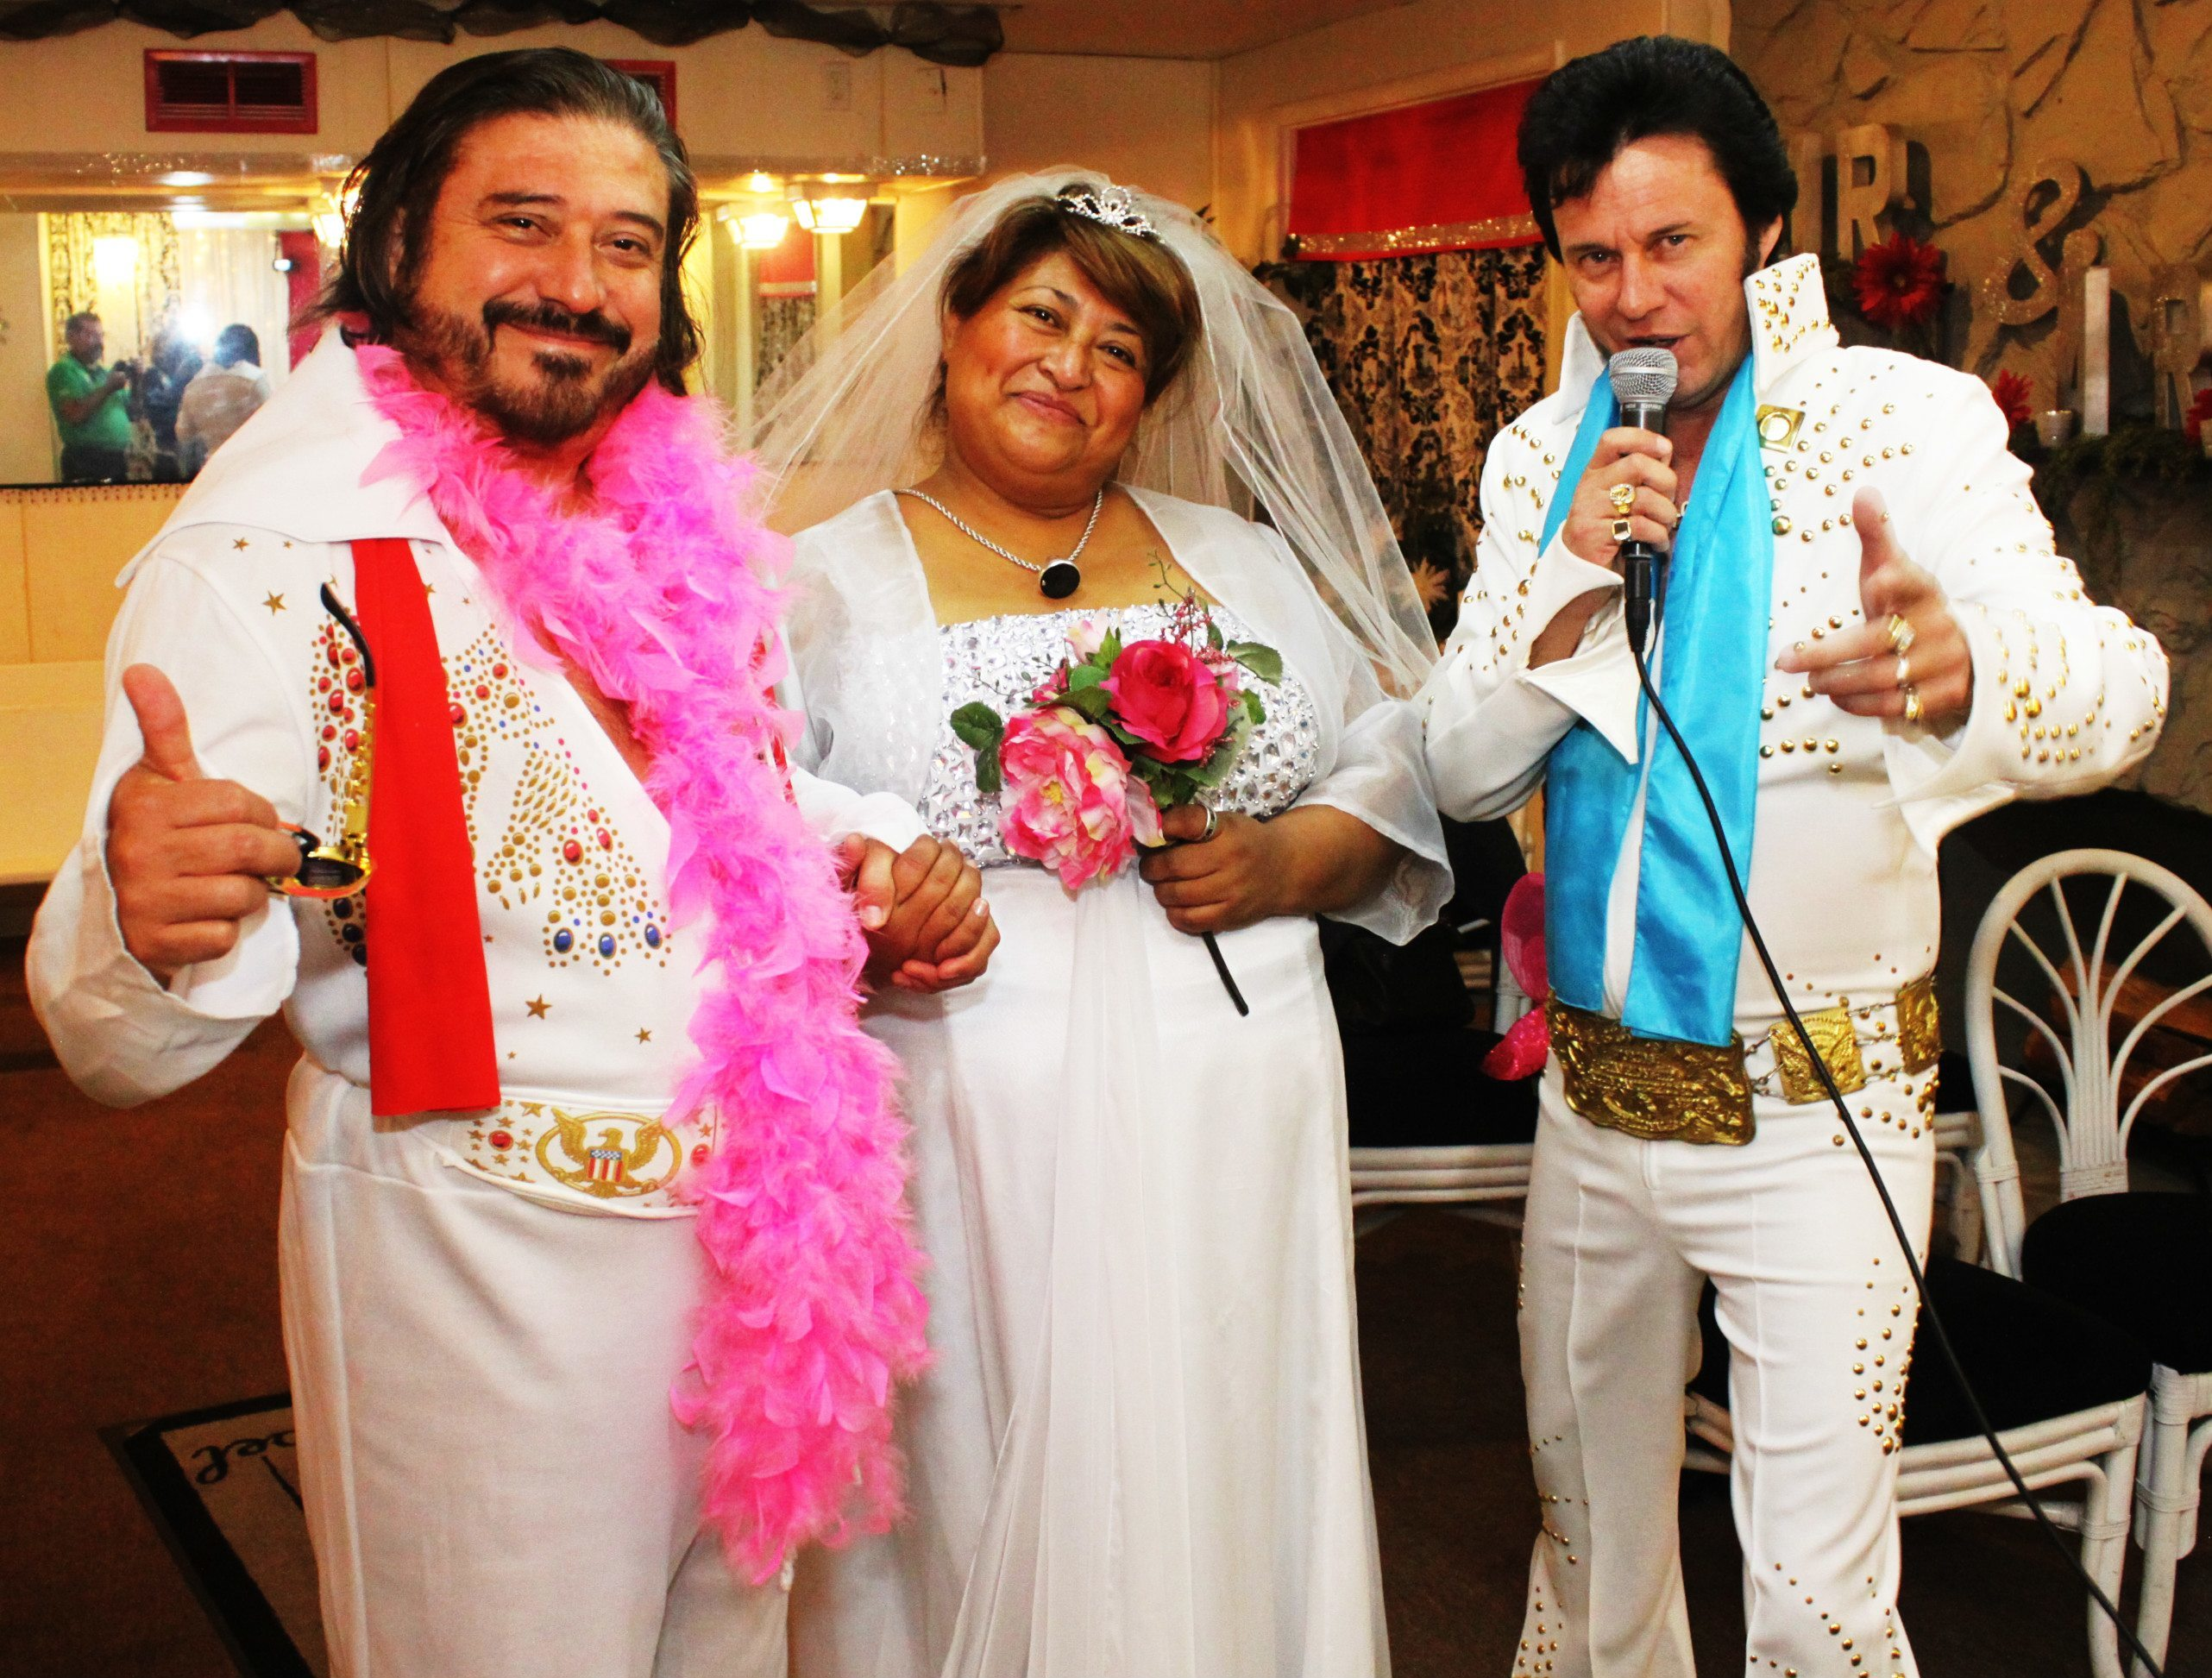 groom and bride dress up for their wedding day with Elvis as their minister